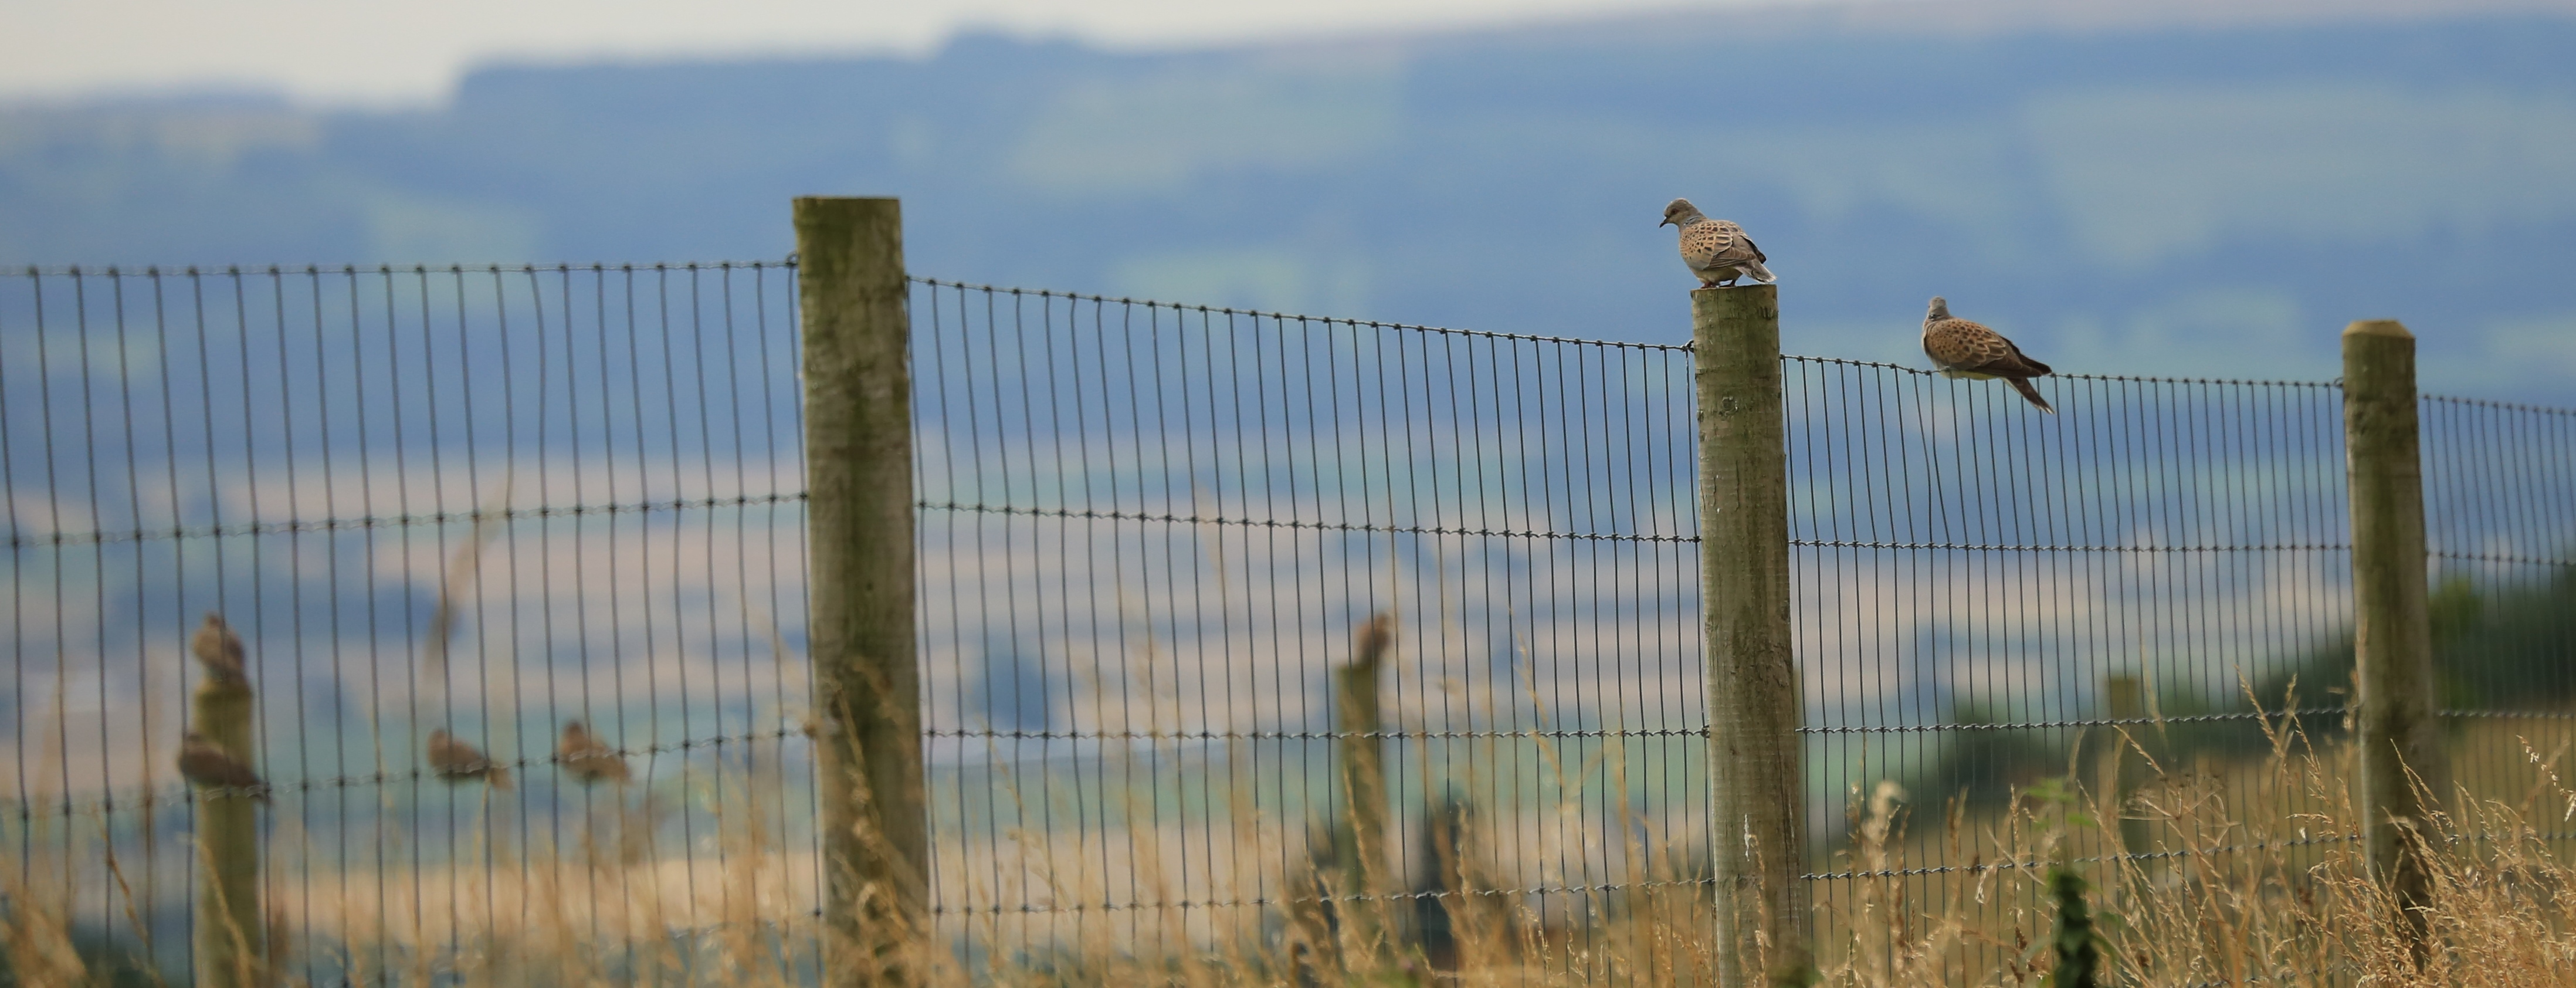 Seven turtle doves on fence in Yorkshire